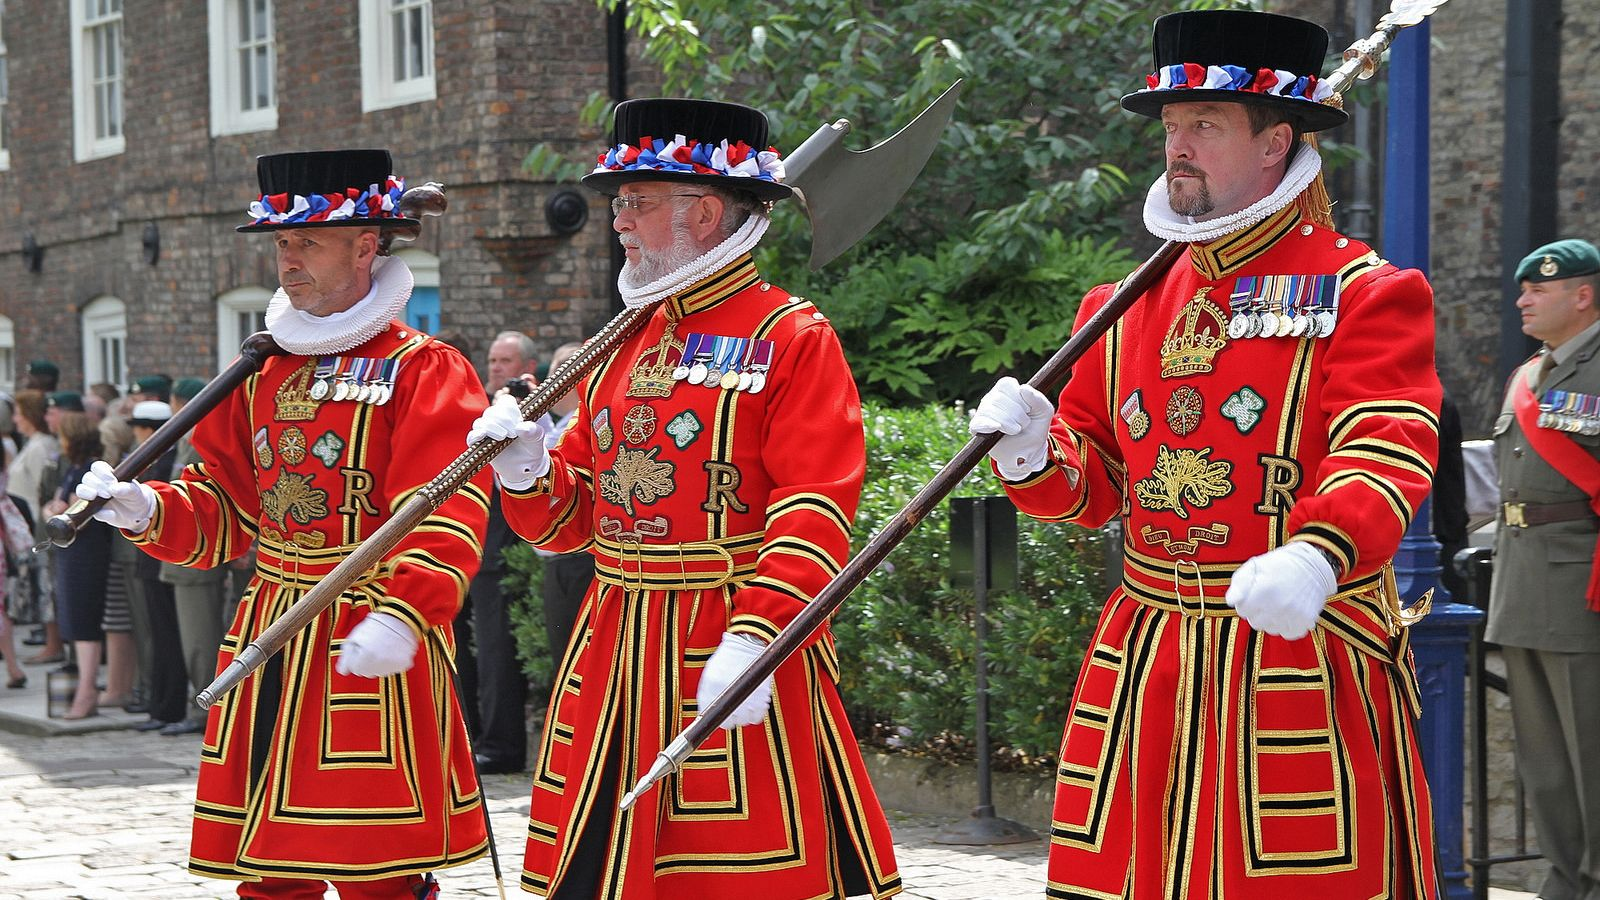 Beefeaters in london